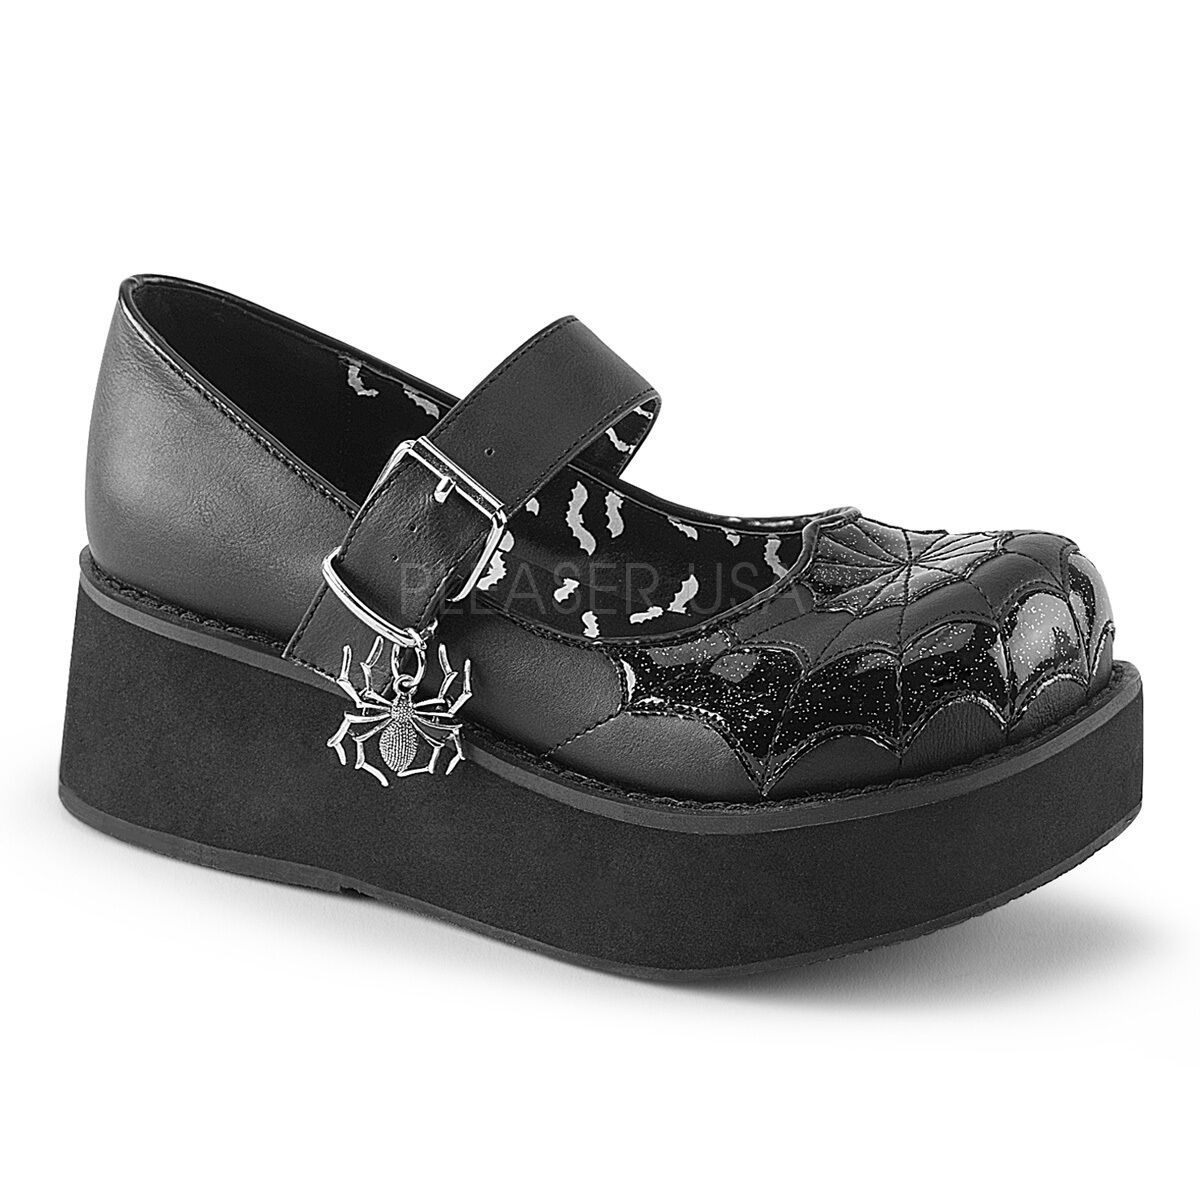 Demonia 2.25  Black Vegan Platform Maryjane Spider Web Charm shoes Goth 6-12